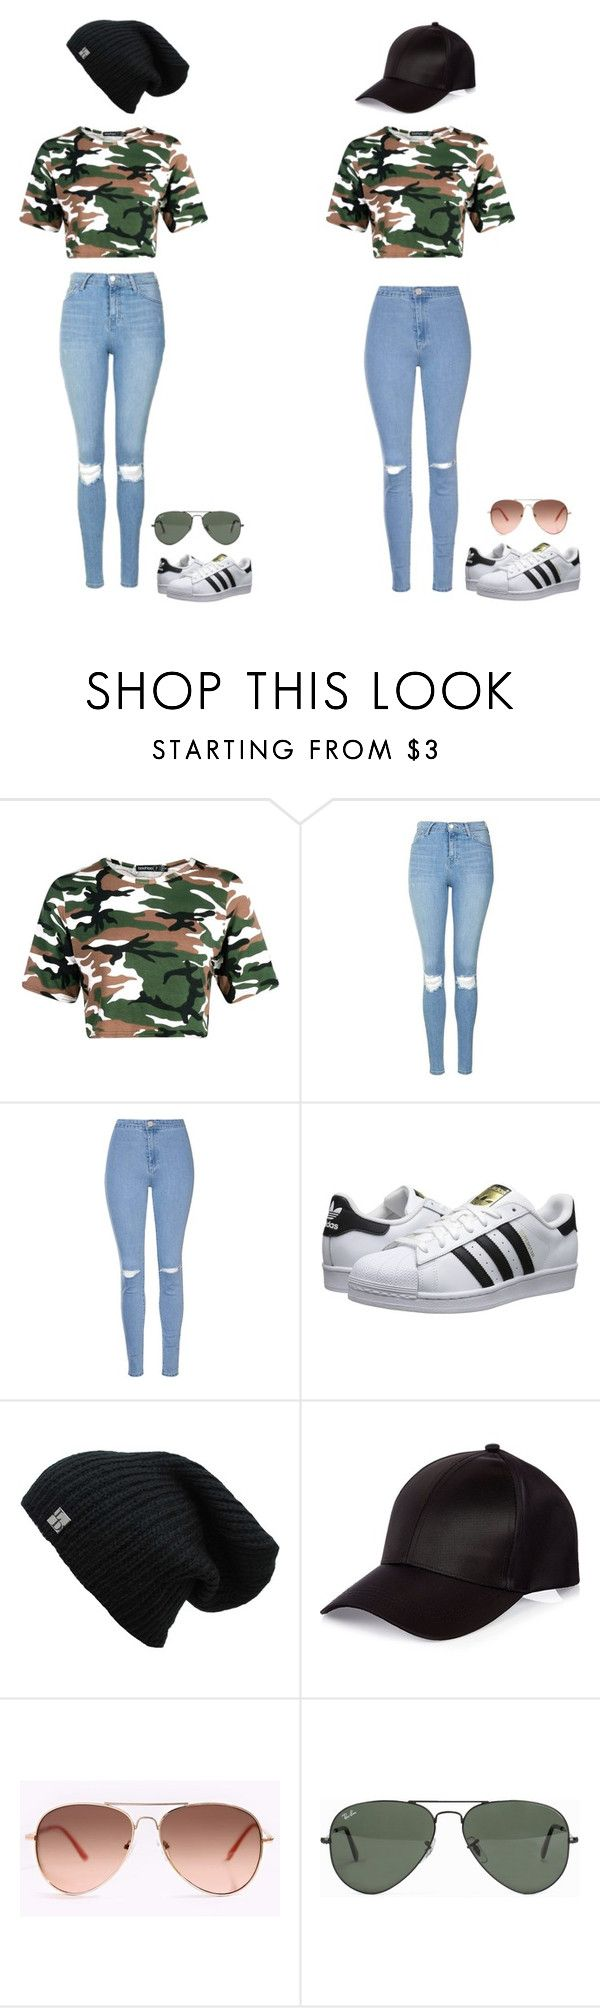 """Lisa and lena"" by molly-523-11-03 ❤ liked on Polyvore featuring Topshop, Glamorous, adidas Originals, River Island and Ray-Ban"